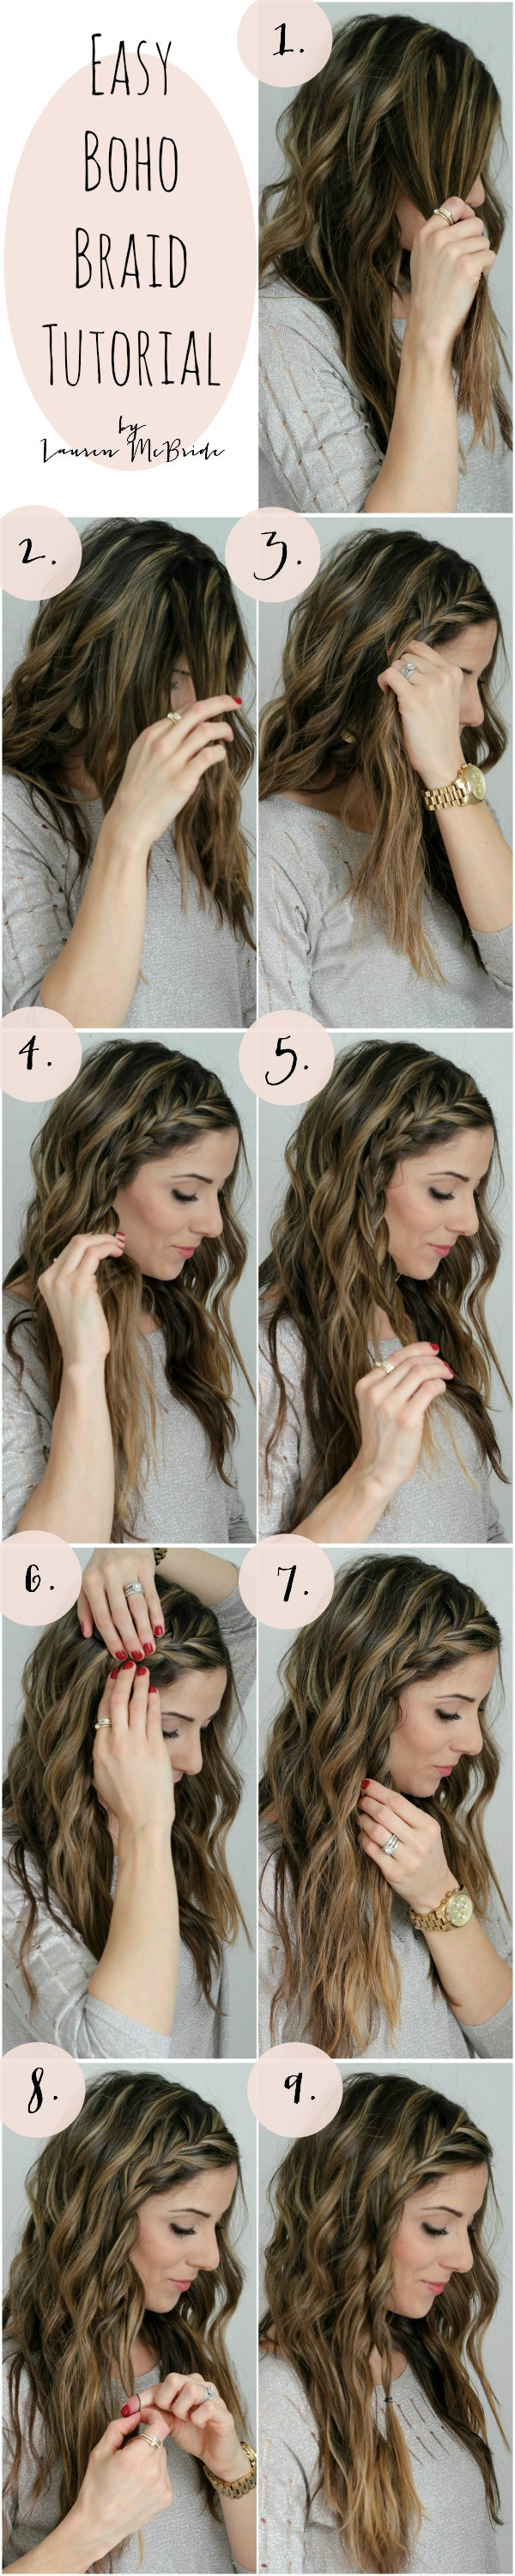 Easy-Boho-Braid-Tutorial